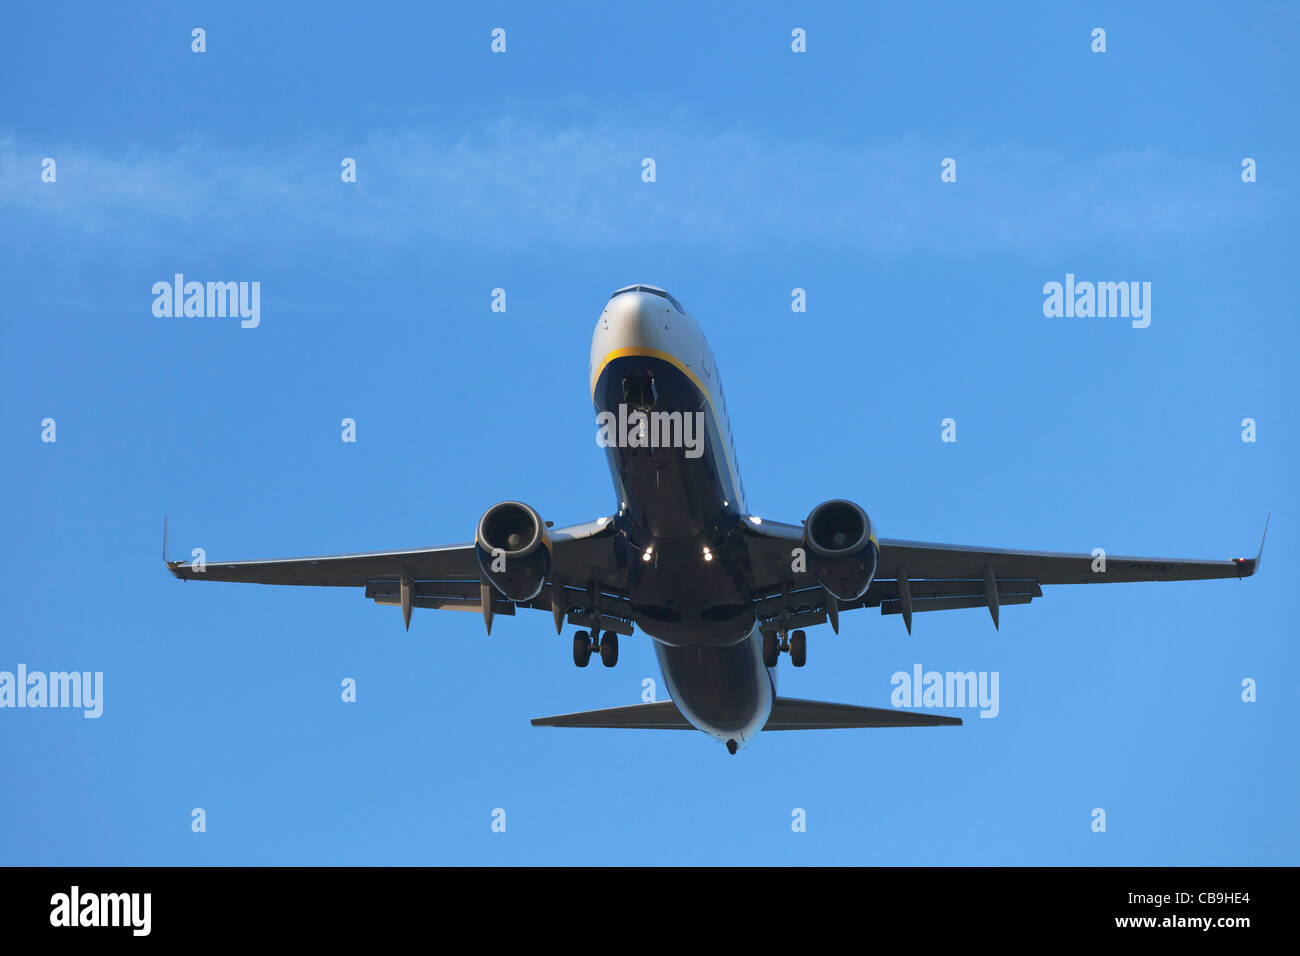 Ryanair Aircraft Boeing 737 on final approach - Stock Image